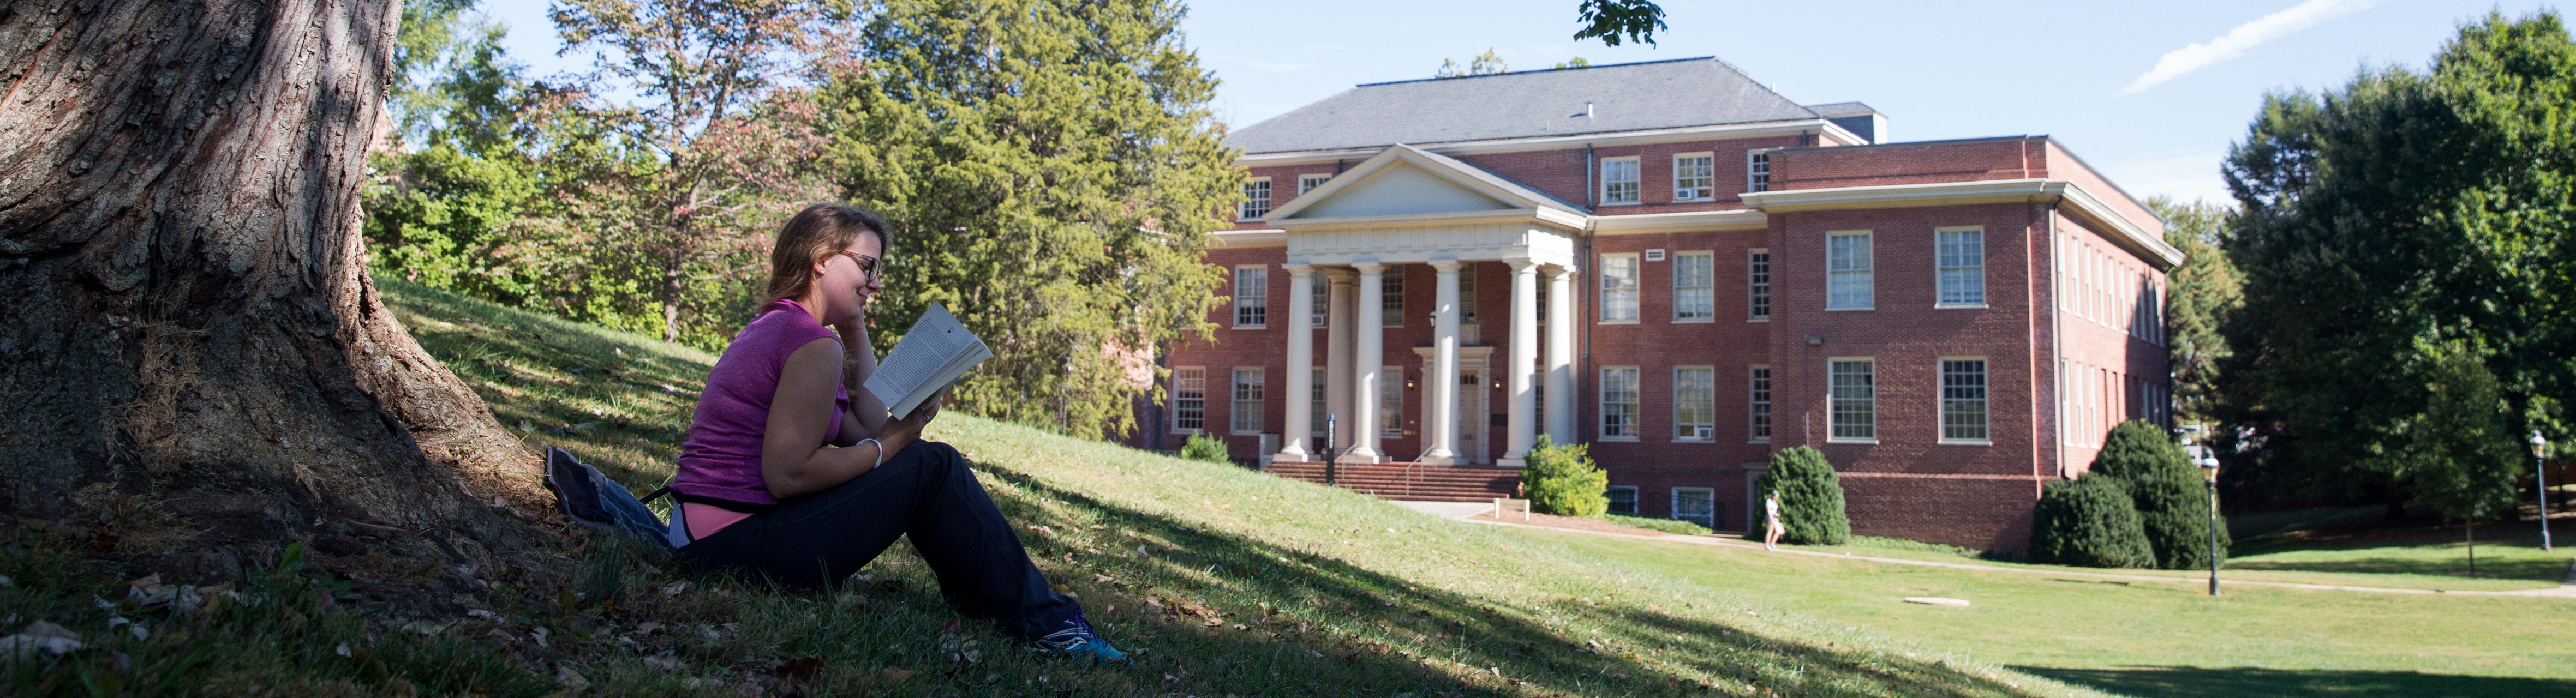 Photo of student reading a book on campus